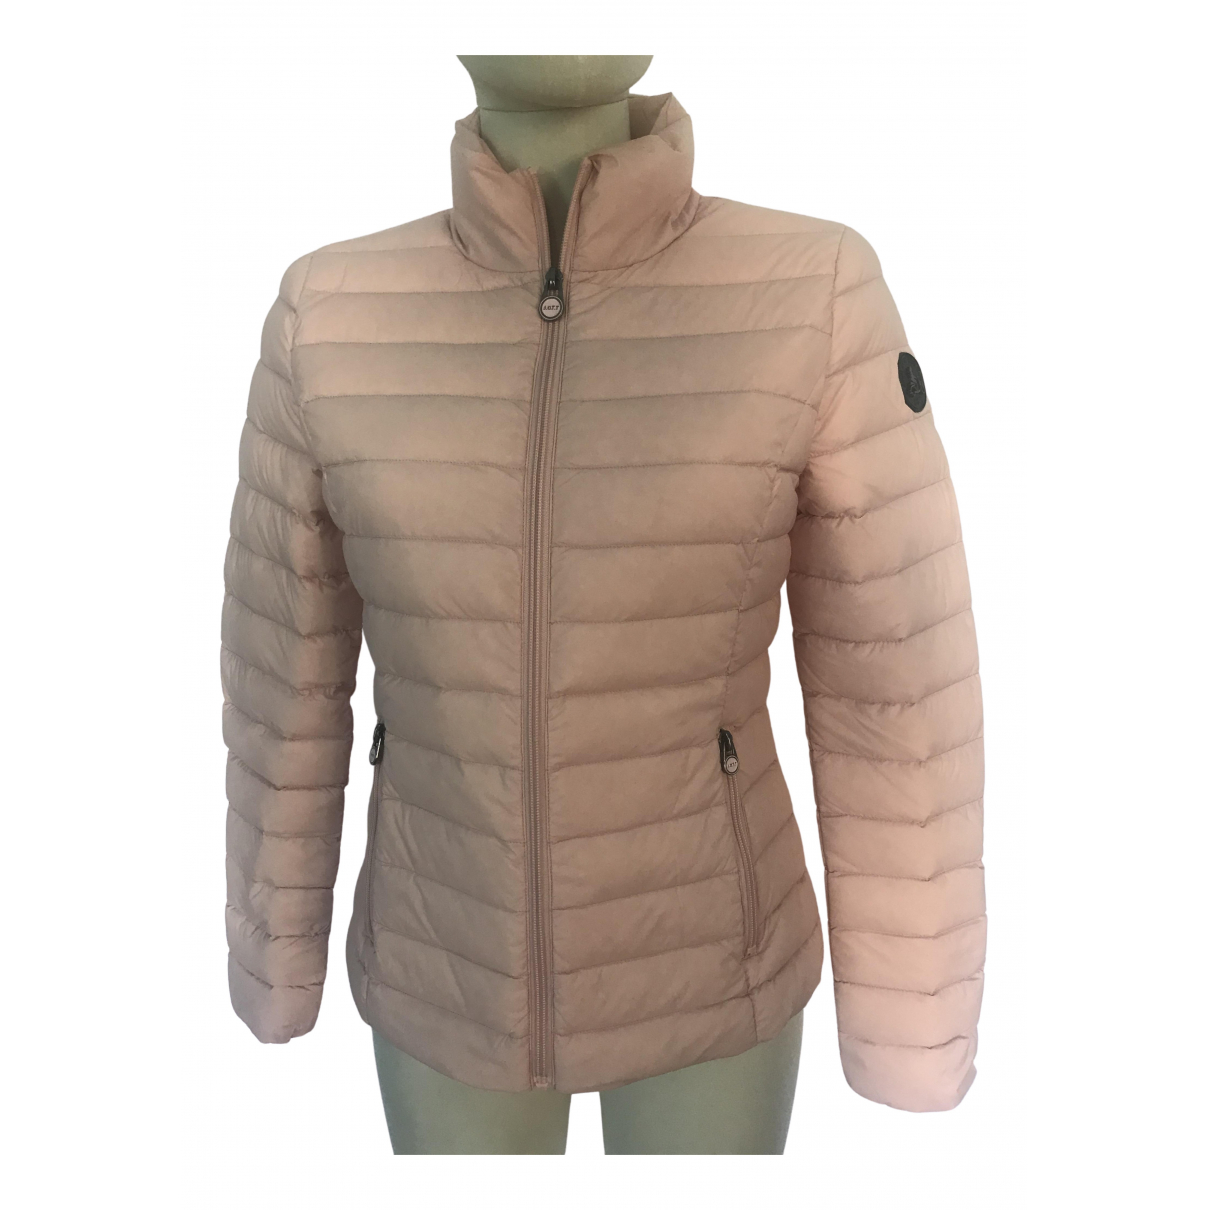 Jott \N Pink jacket for Women S International